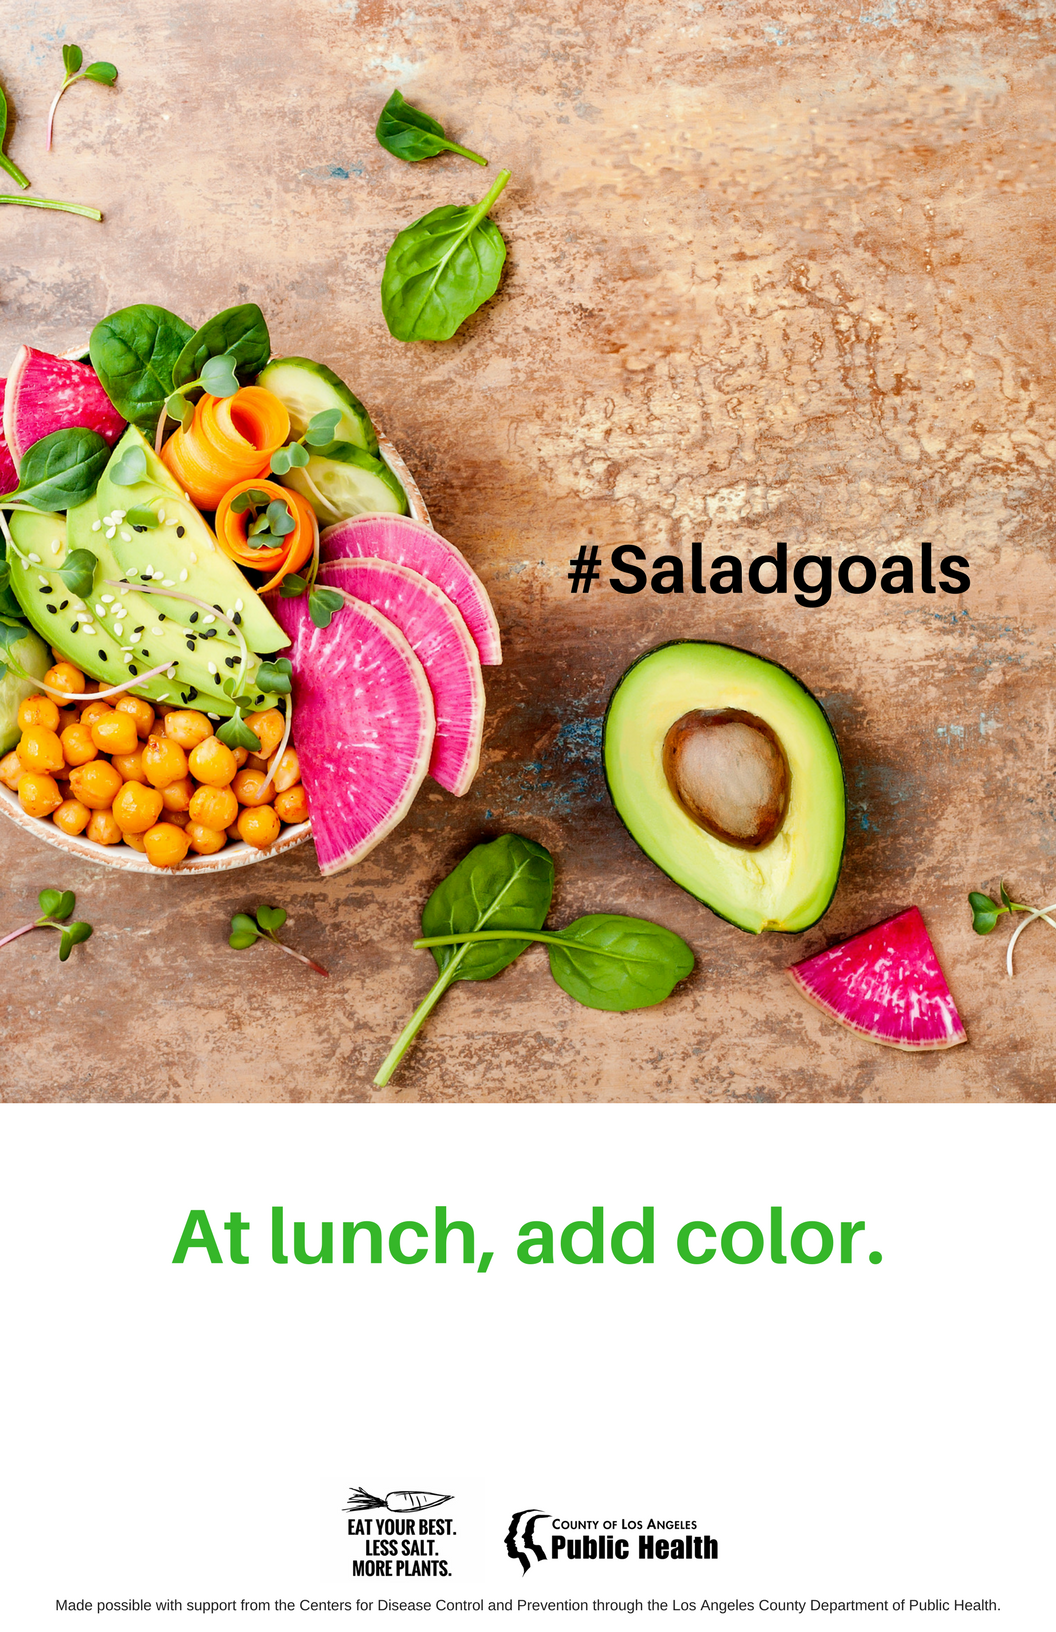 Sign reading Hashtag salad goals: At lunch, add color.